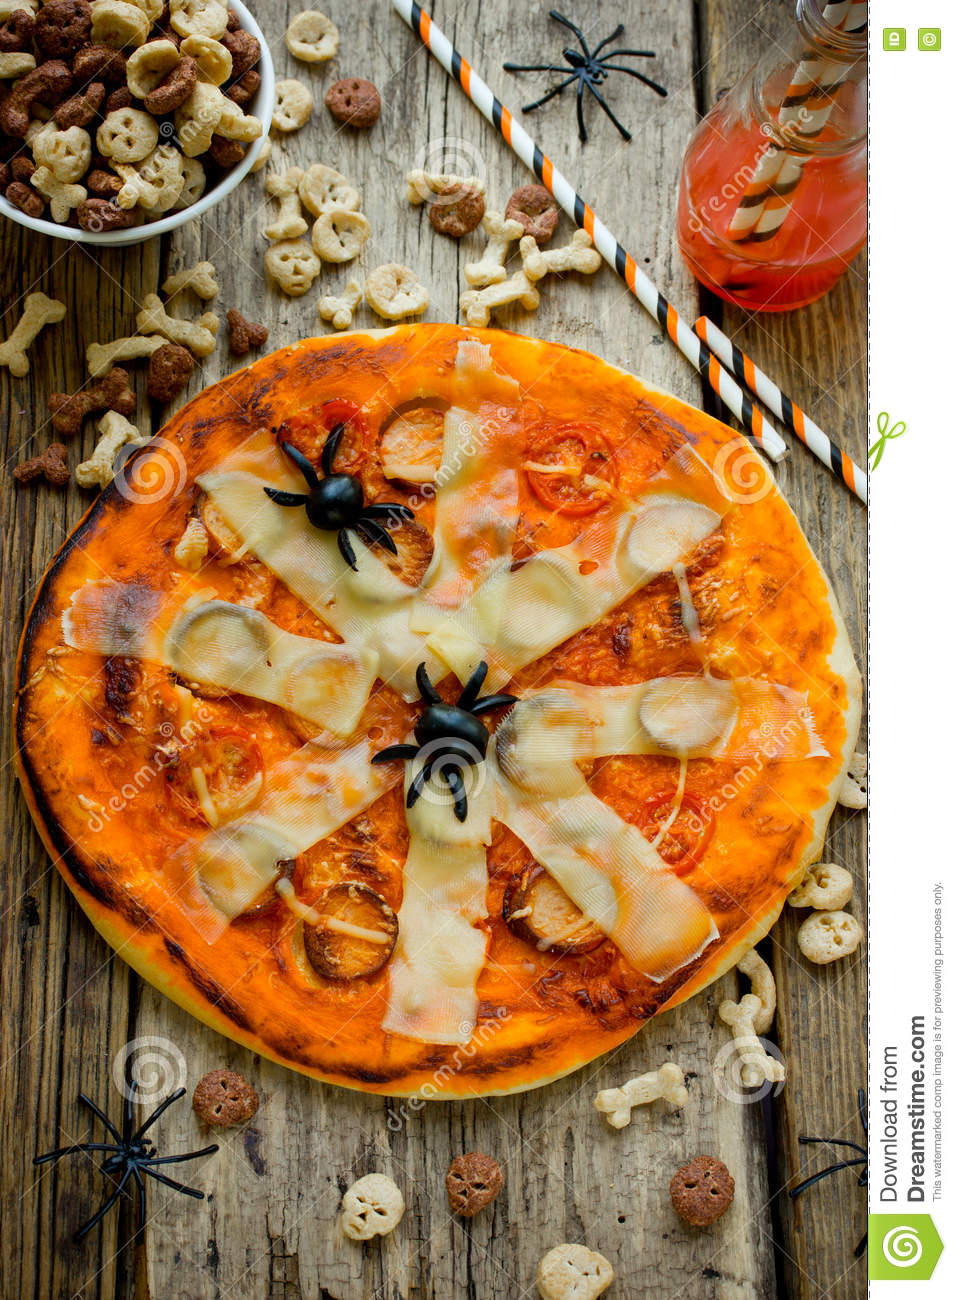 Decoration De Table Pour Halloween Halloween Pizza Treat For Halloween Party Holiday Decoration